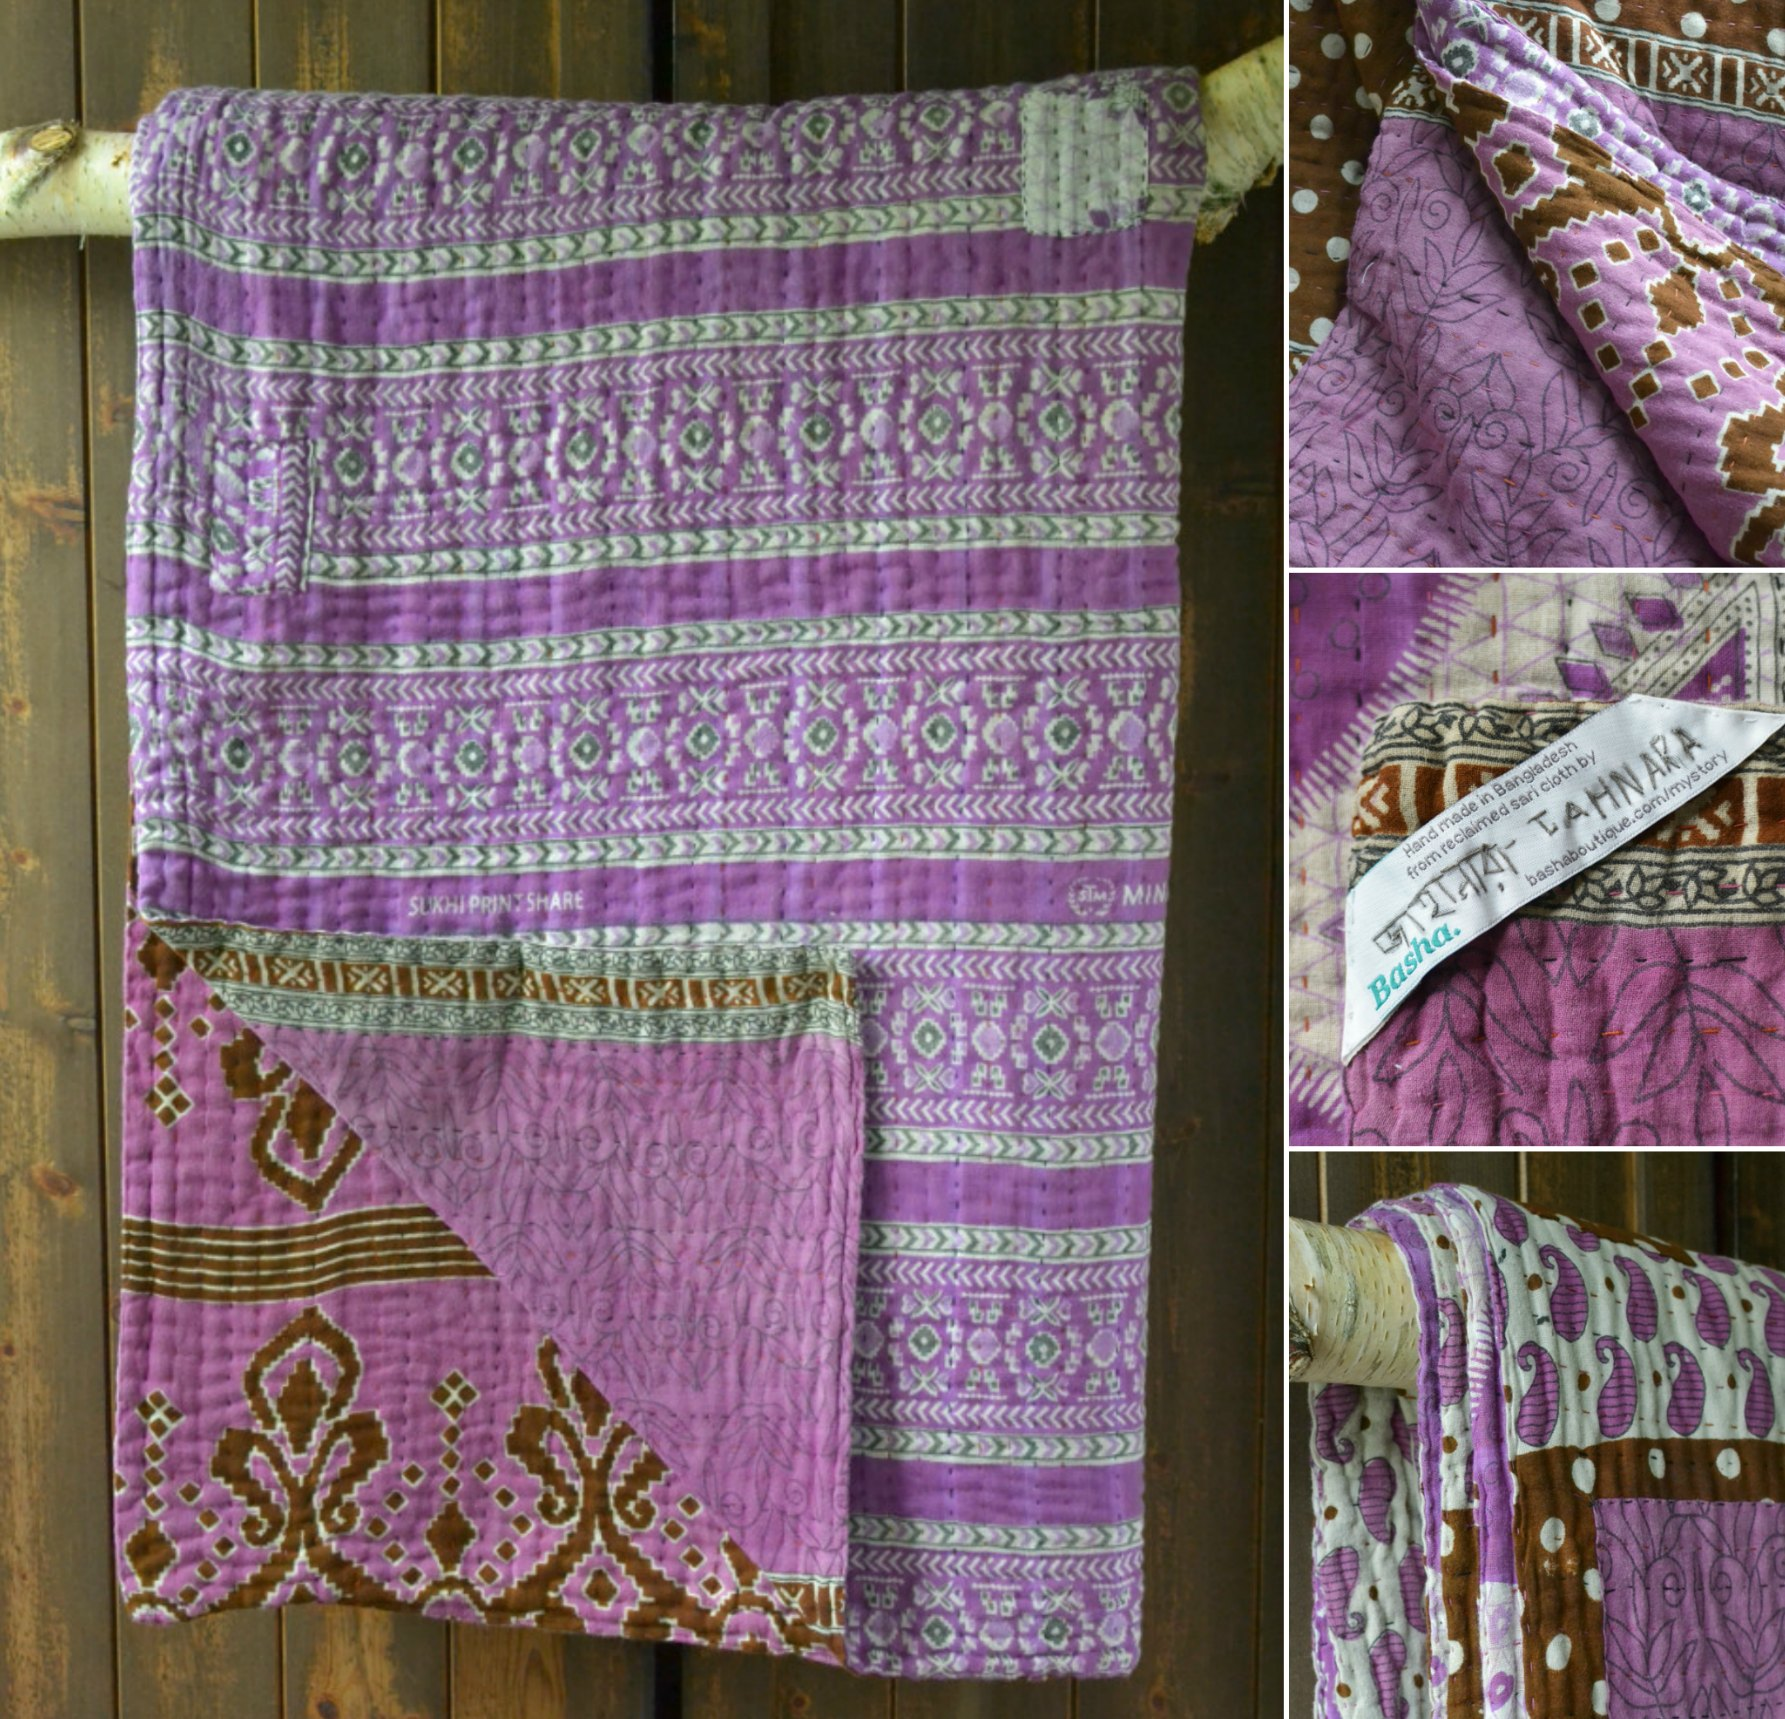 Lilac kantha quilt Decorator's Notebook fair trade Shop